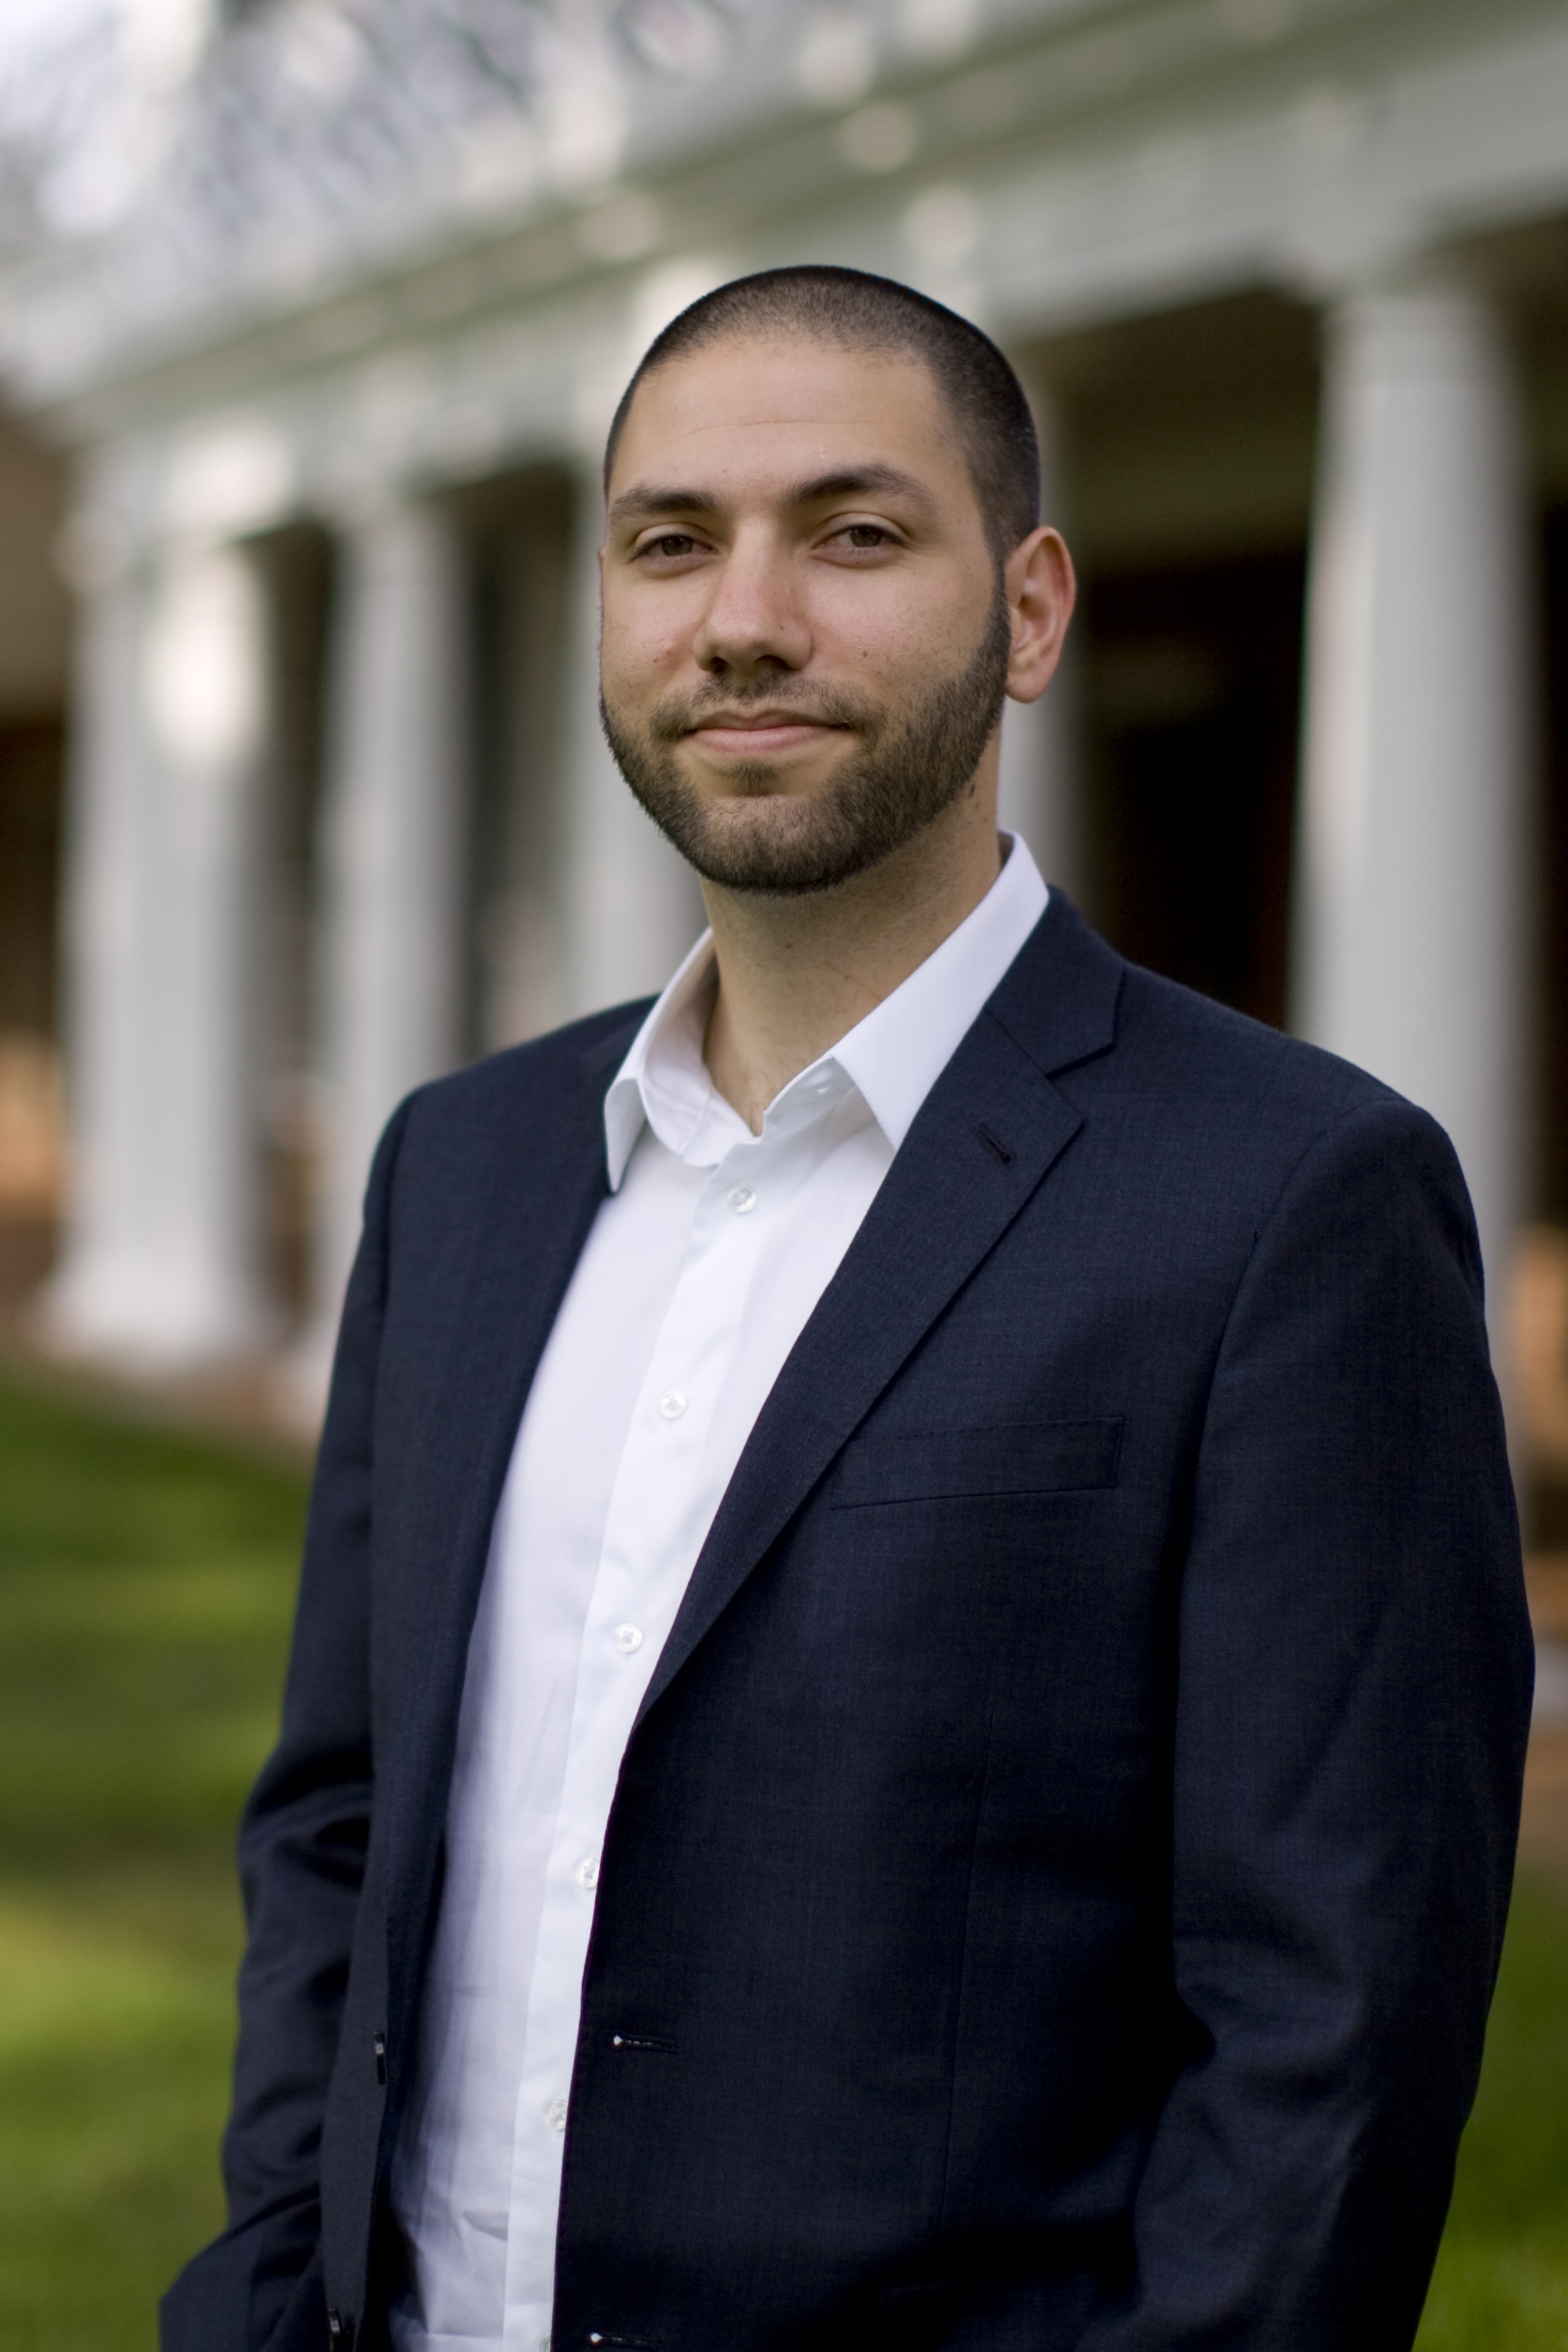 Assistant professor Benjamin Converse studies social psychology and the psychology of judgment and decision-making.